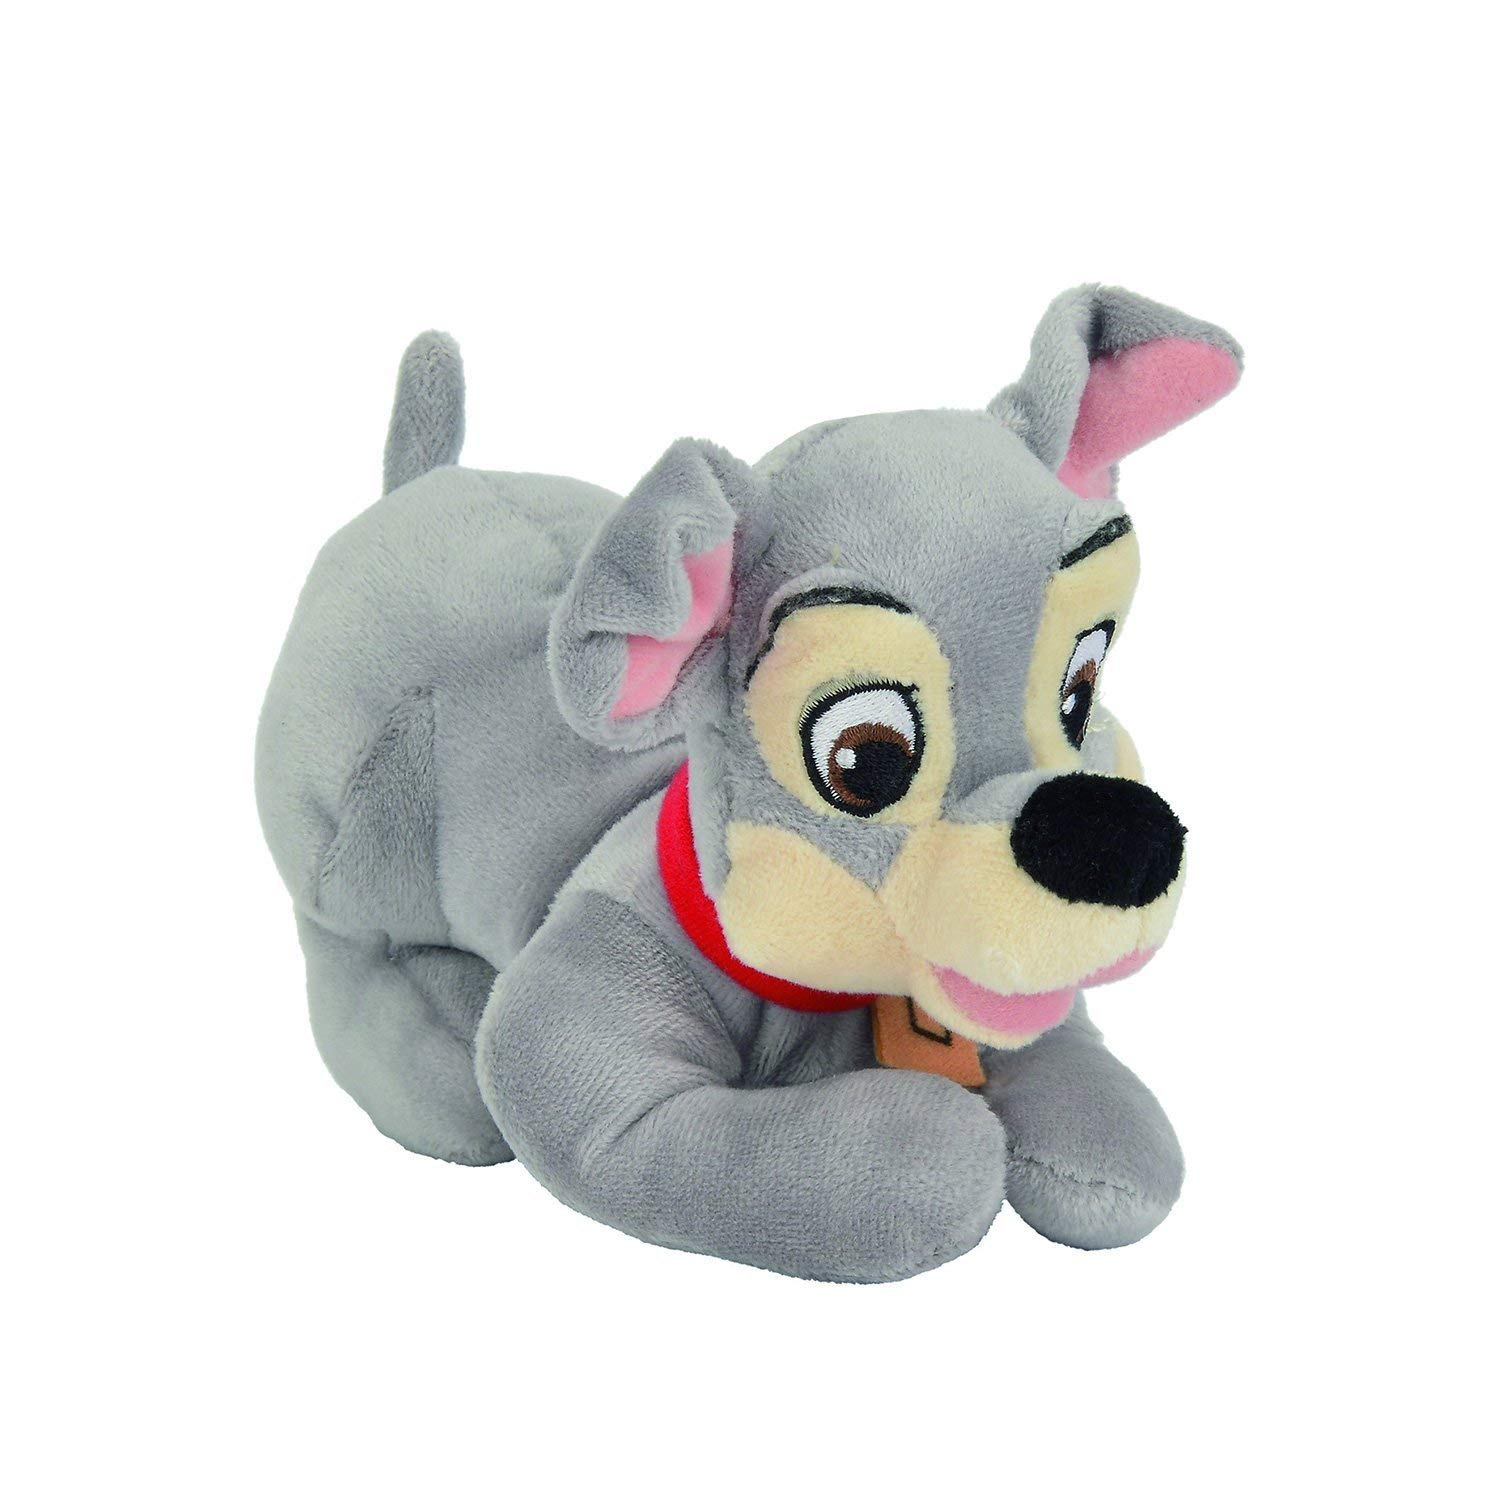 Peluche DISNEY ANIMAL FRIENDS - Lilli e il VAGABONDO - 18 cm